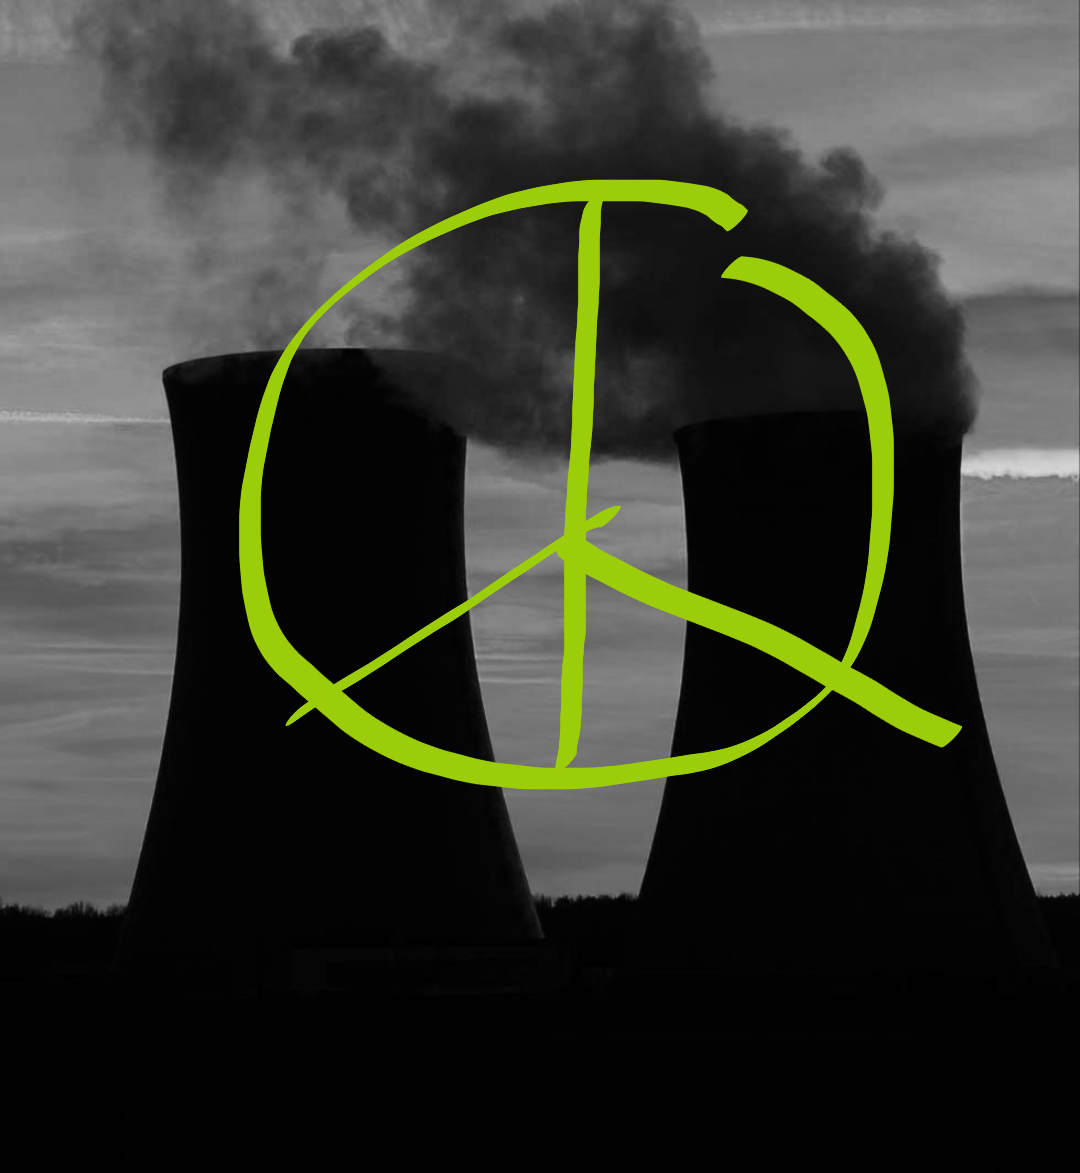 powerplantpeacesign.jpg